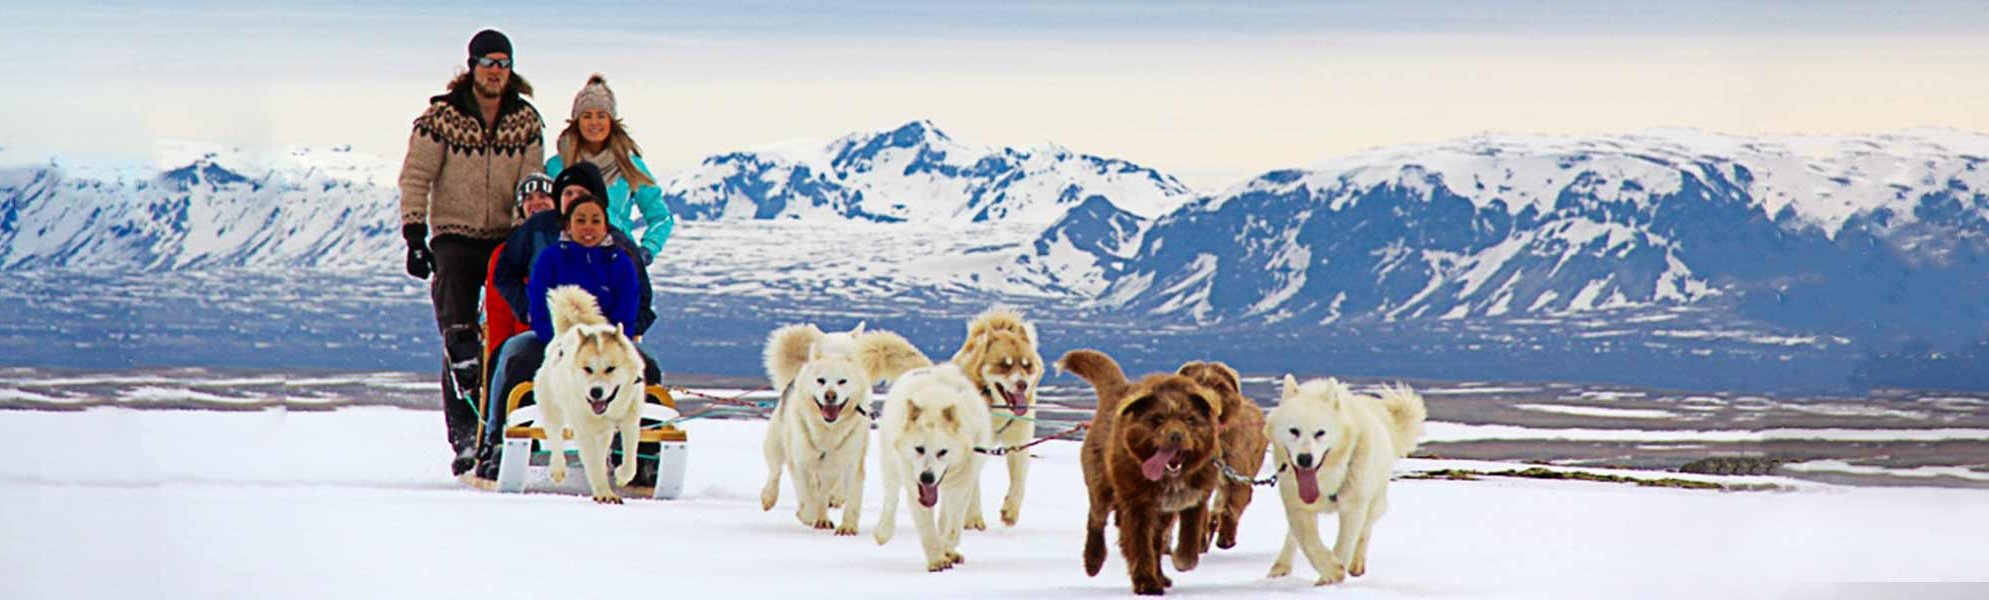 dog sledding tour iceland